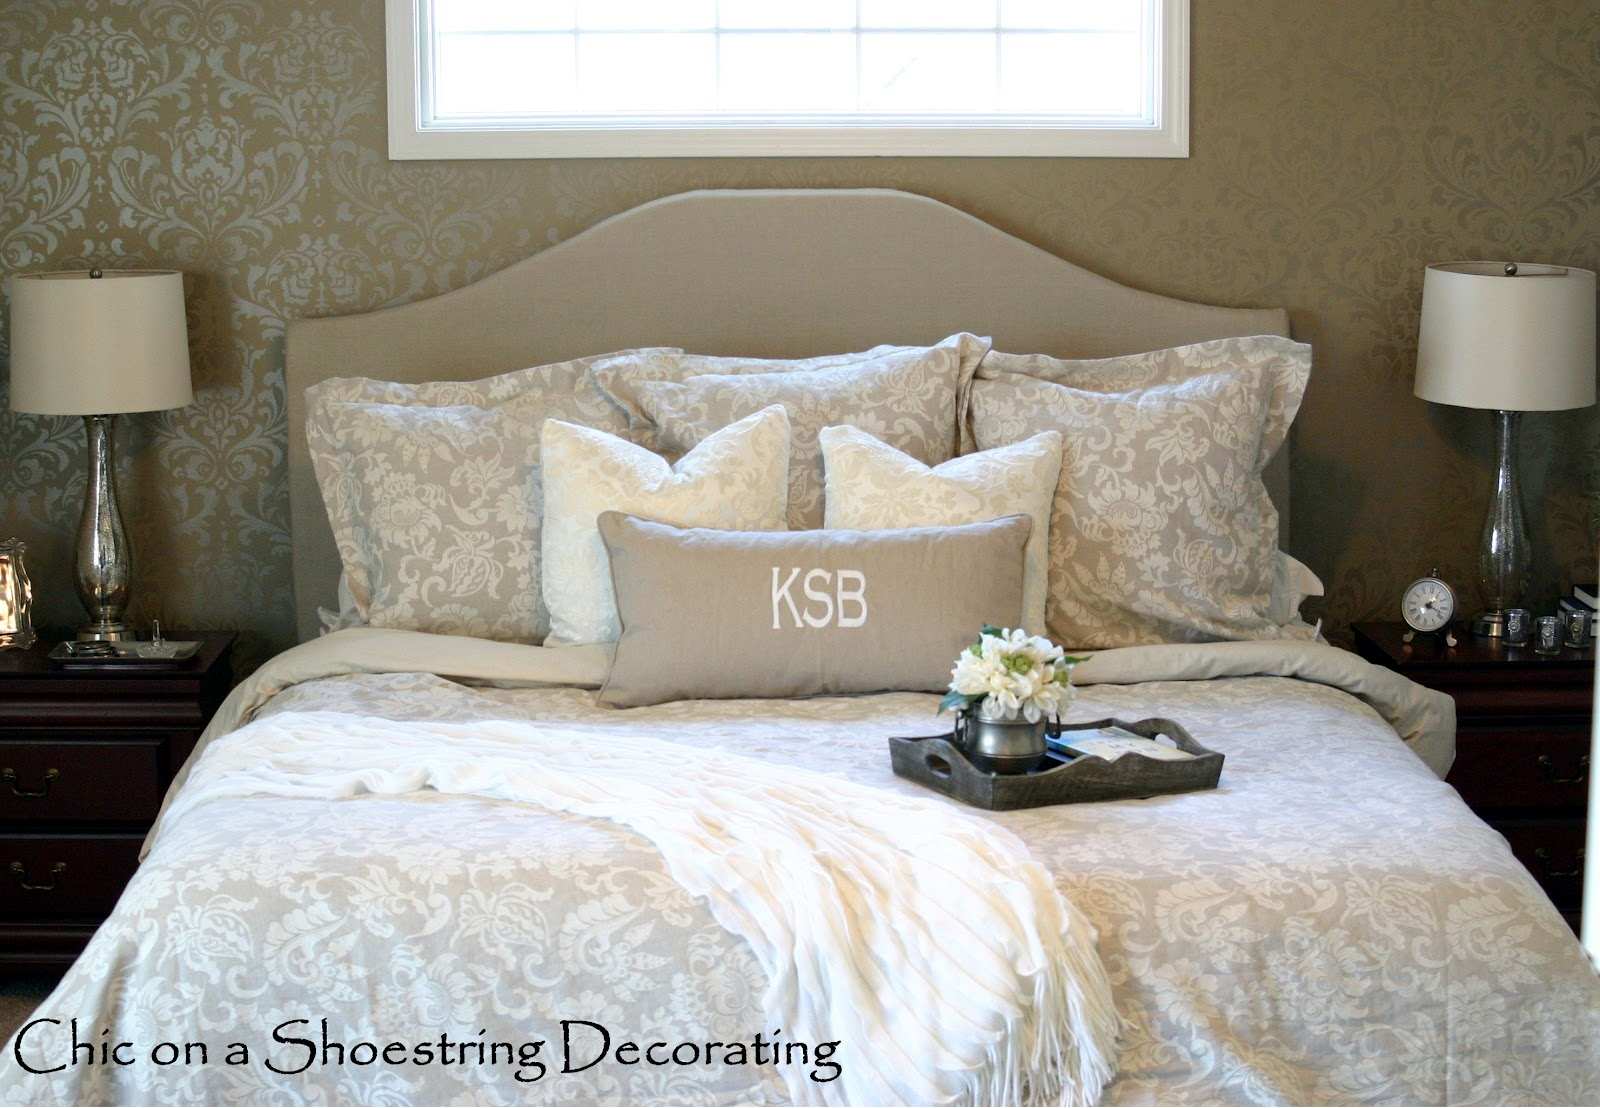 Chic on a shoestring decorating neutral master bedroom reveal Master bedroom bed linens